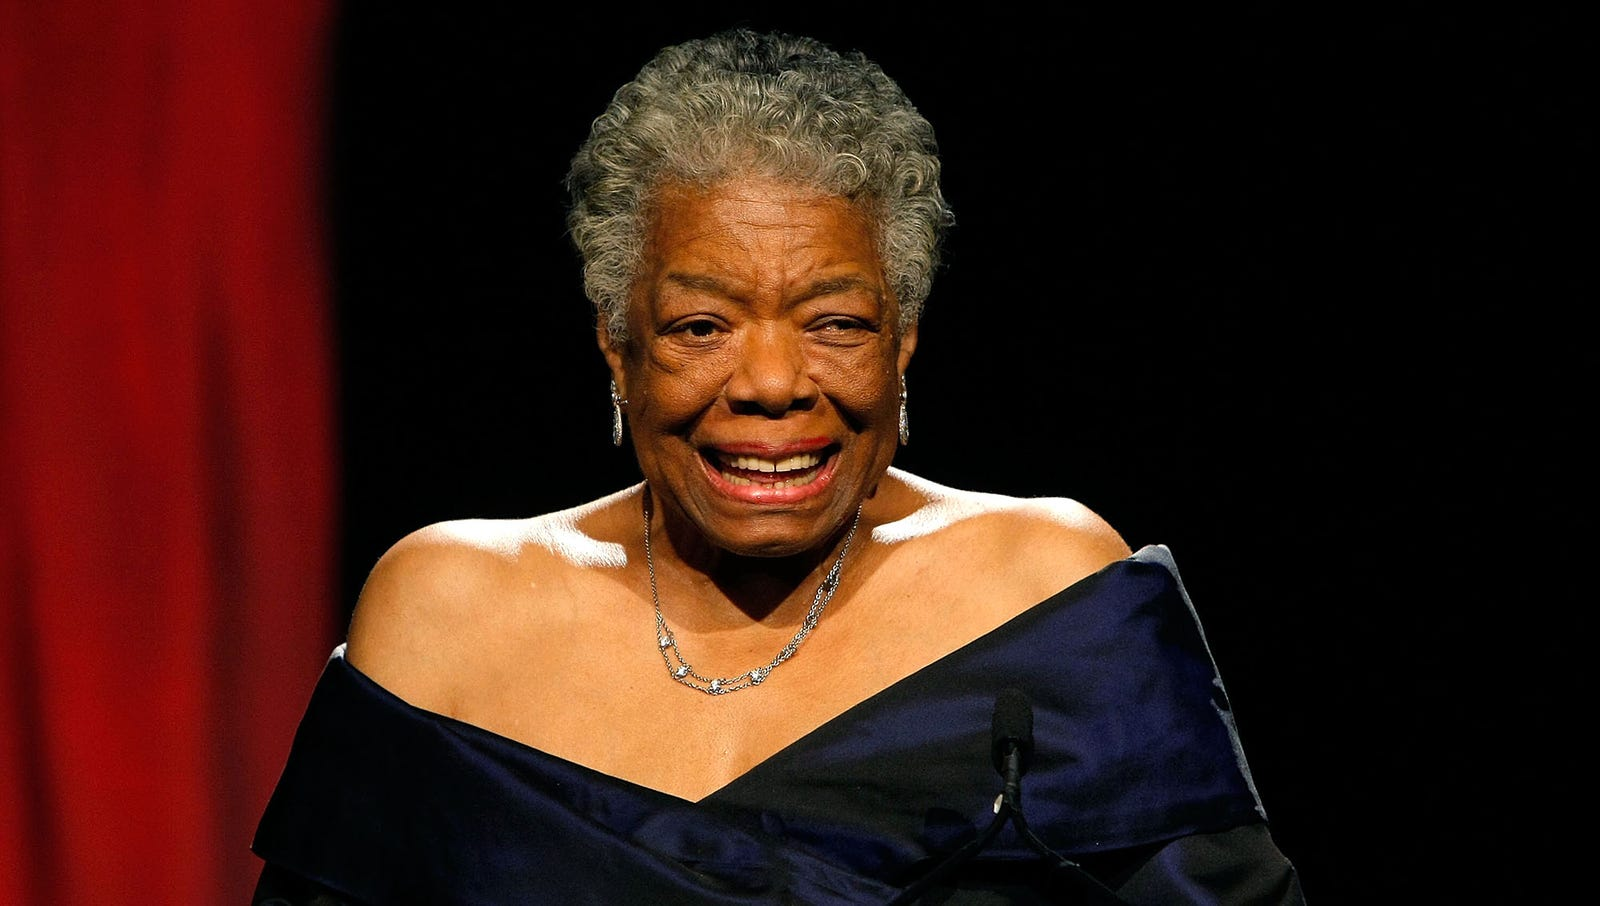 Maya Angelou  Following her death in May, the groundbreaking poet, singer, dancer, and humanitarian was eulogized the world over with incorrectly paraphrased quotations from her work on social media.